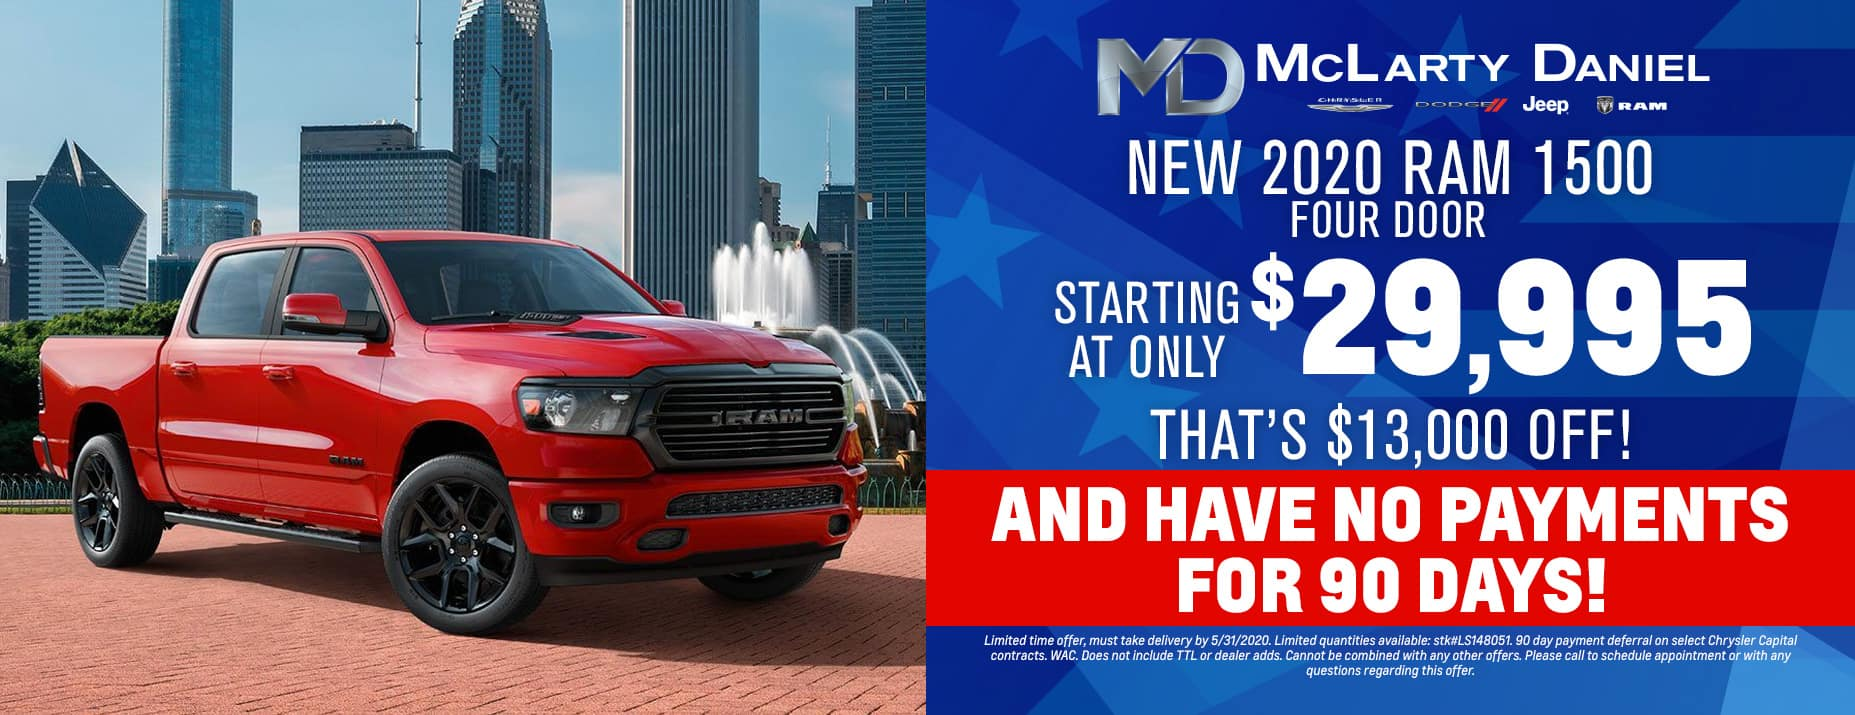 Buy a new four door new RAM 1500 starting at only $29,995— that's $13,000 off!— and have no payments for 90 days!